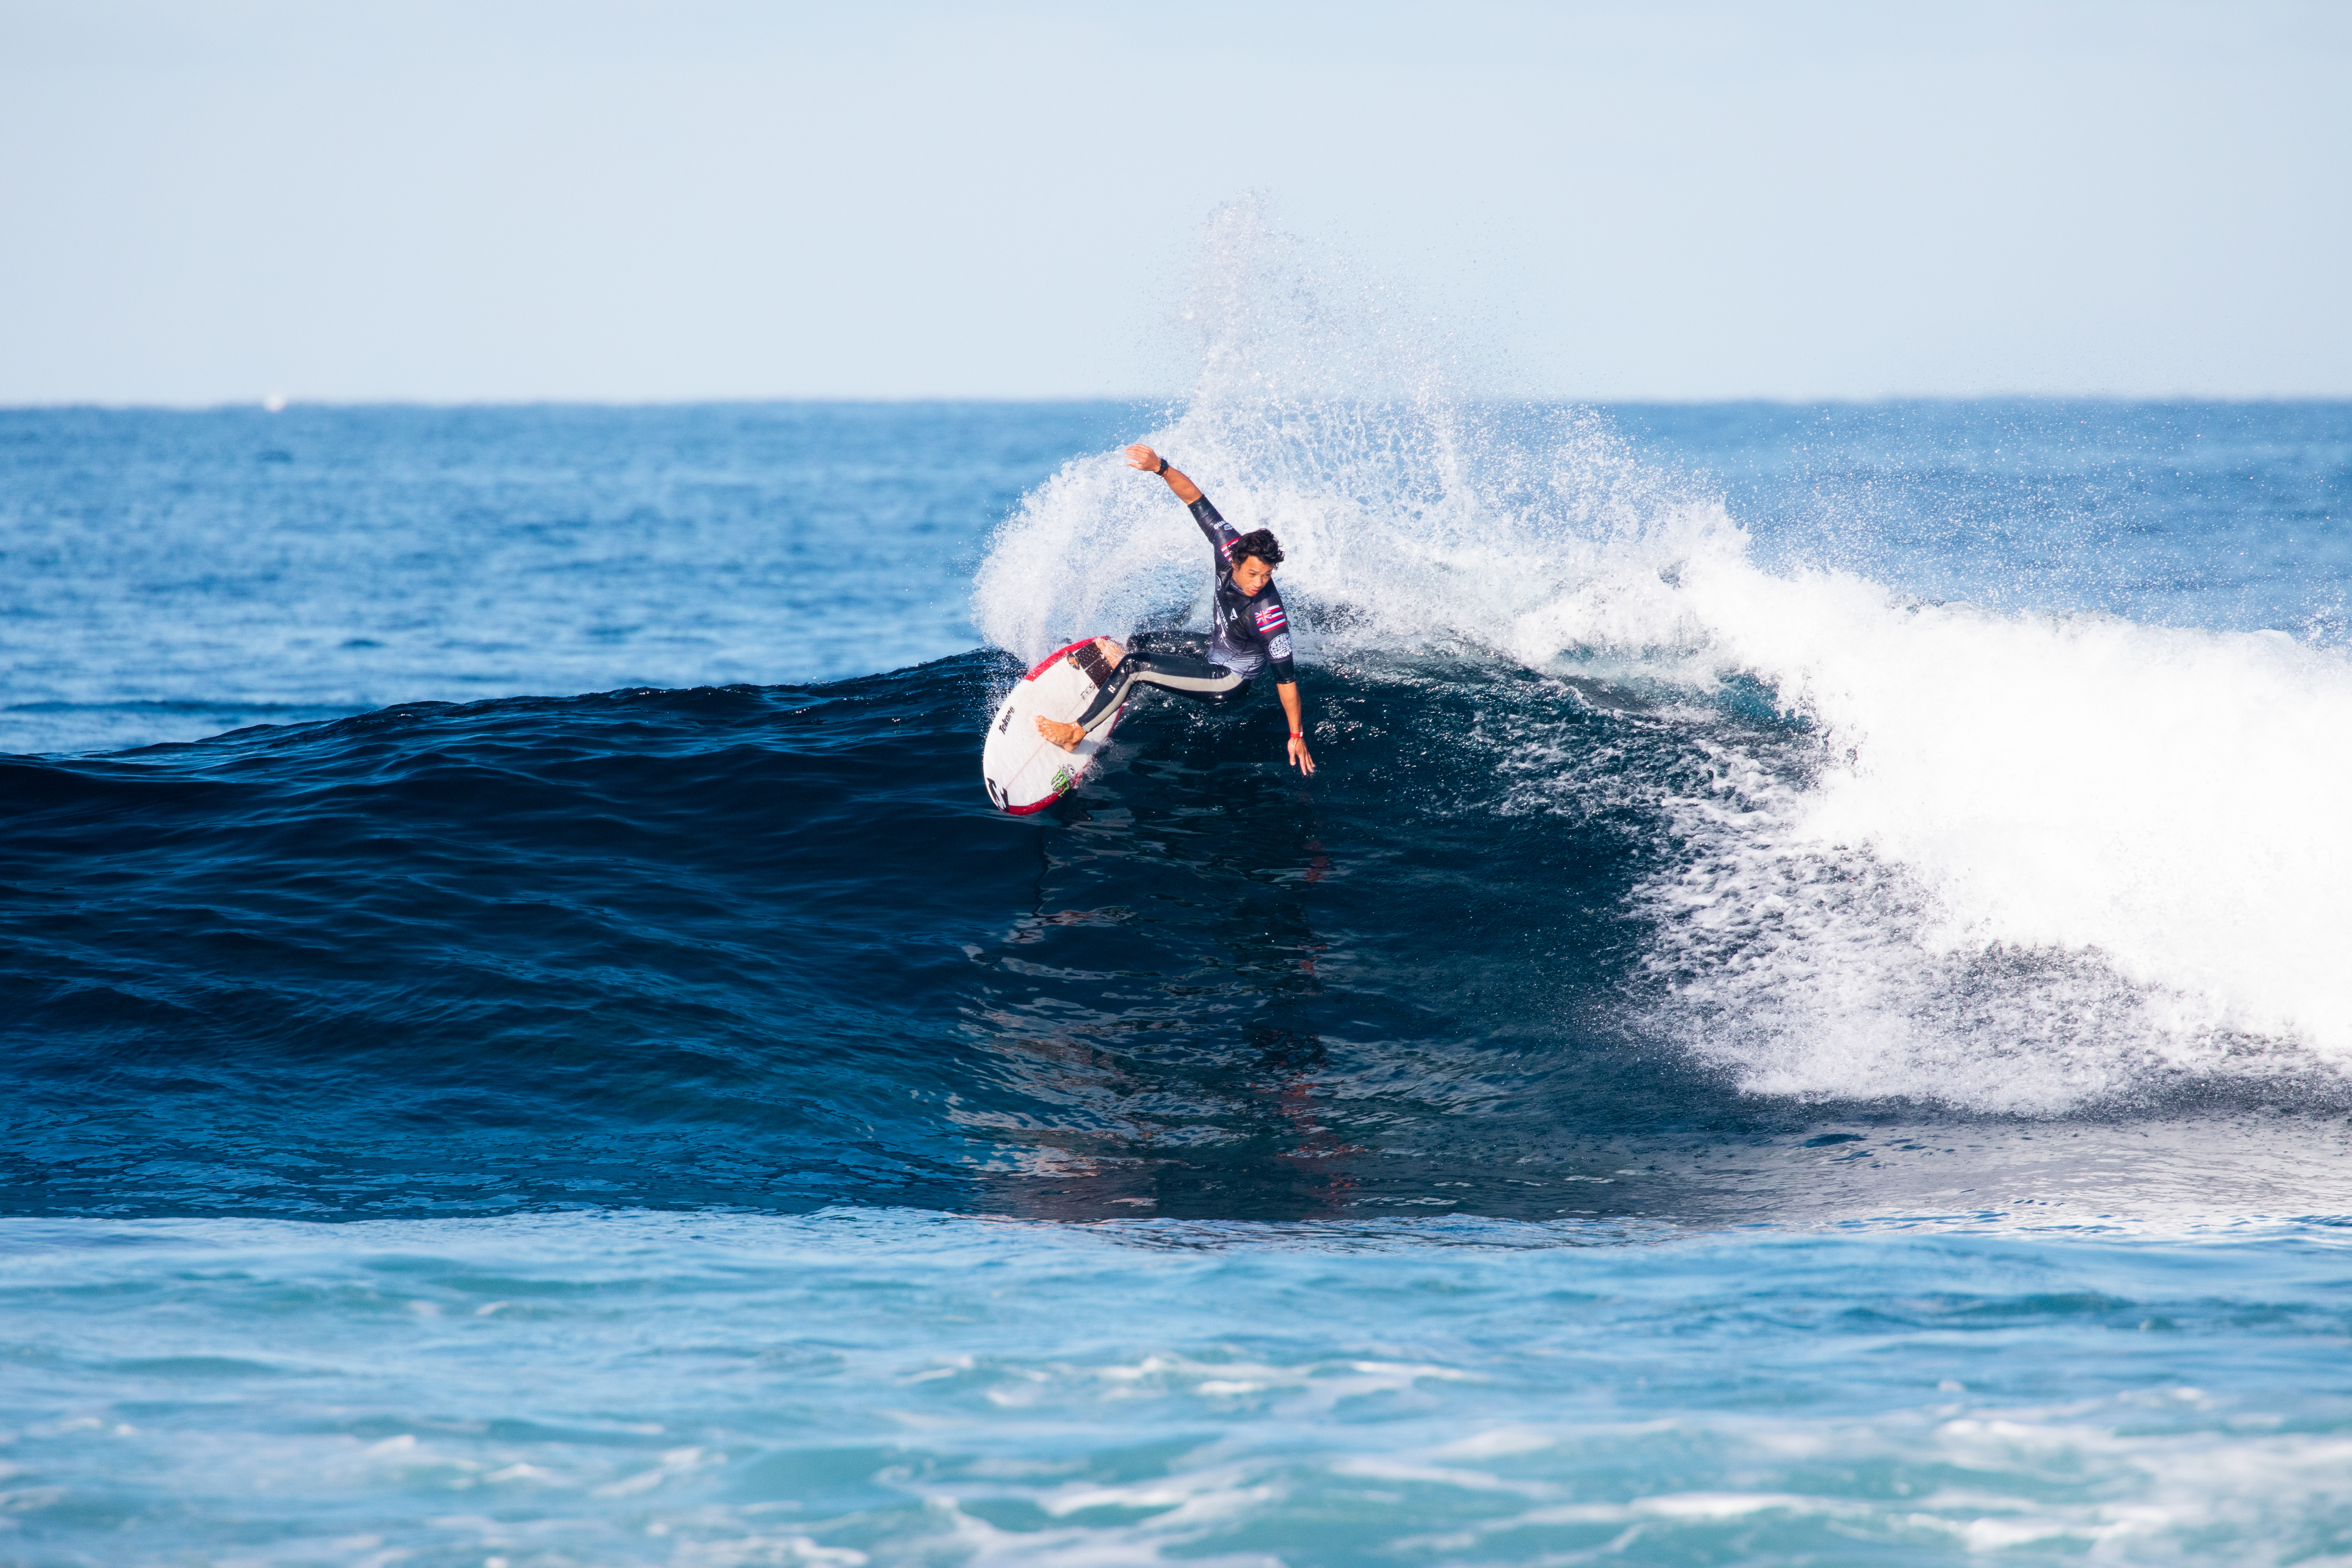 Rip Curl Rottnest Search presented by Corona